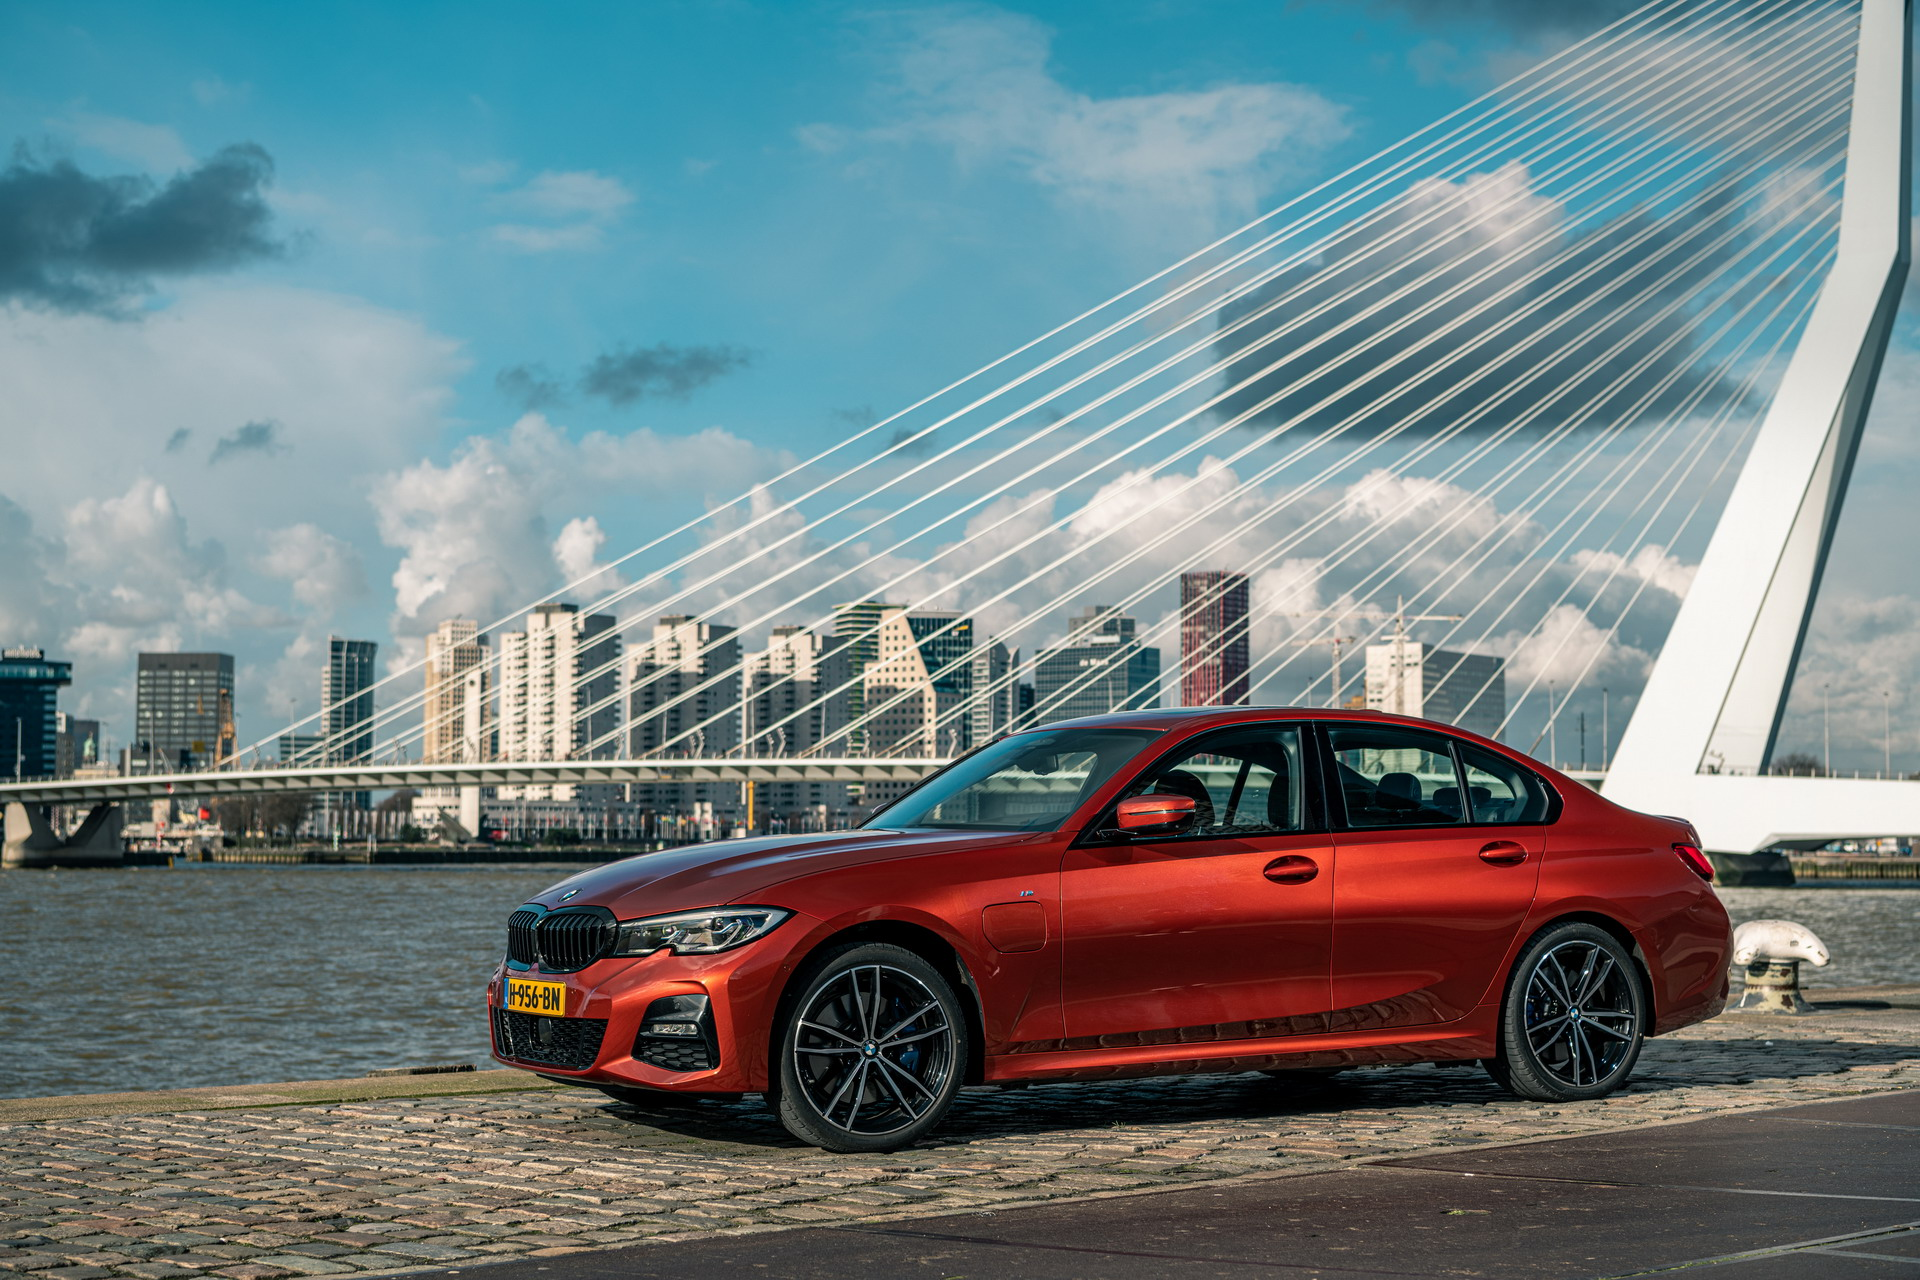 The new BMW 330e in the BMW eDrive Zones in G4 12